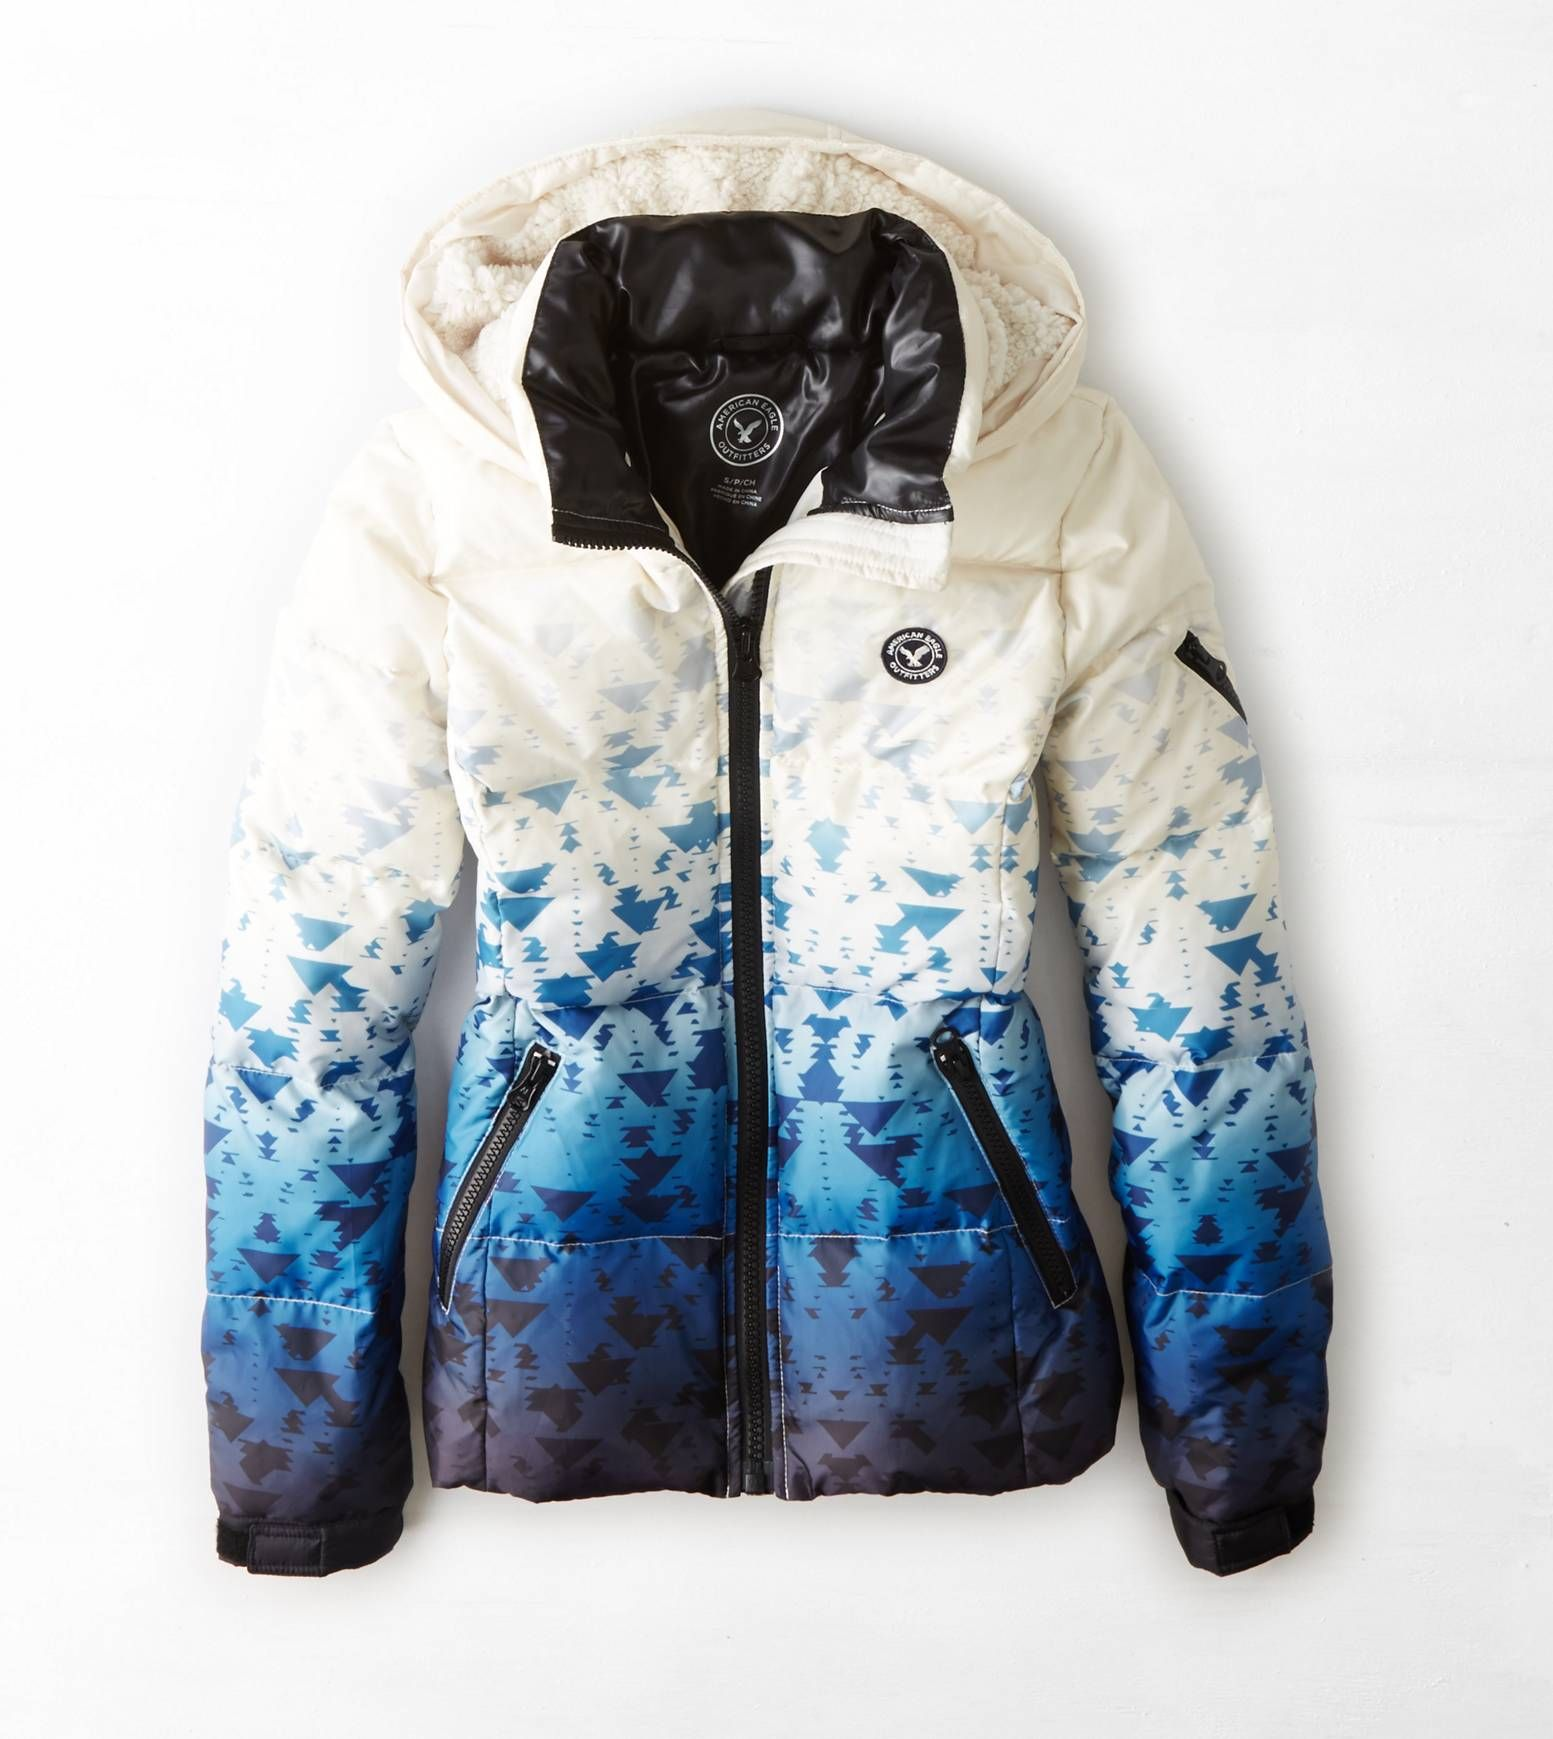 White Aeo Get Down Hooded Puffer Jacket Jackets Jackets For Women Puffer Jackets [ 1739 x 1553 Pixel ]